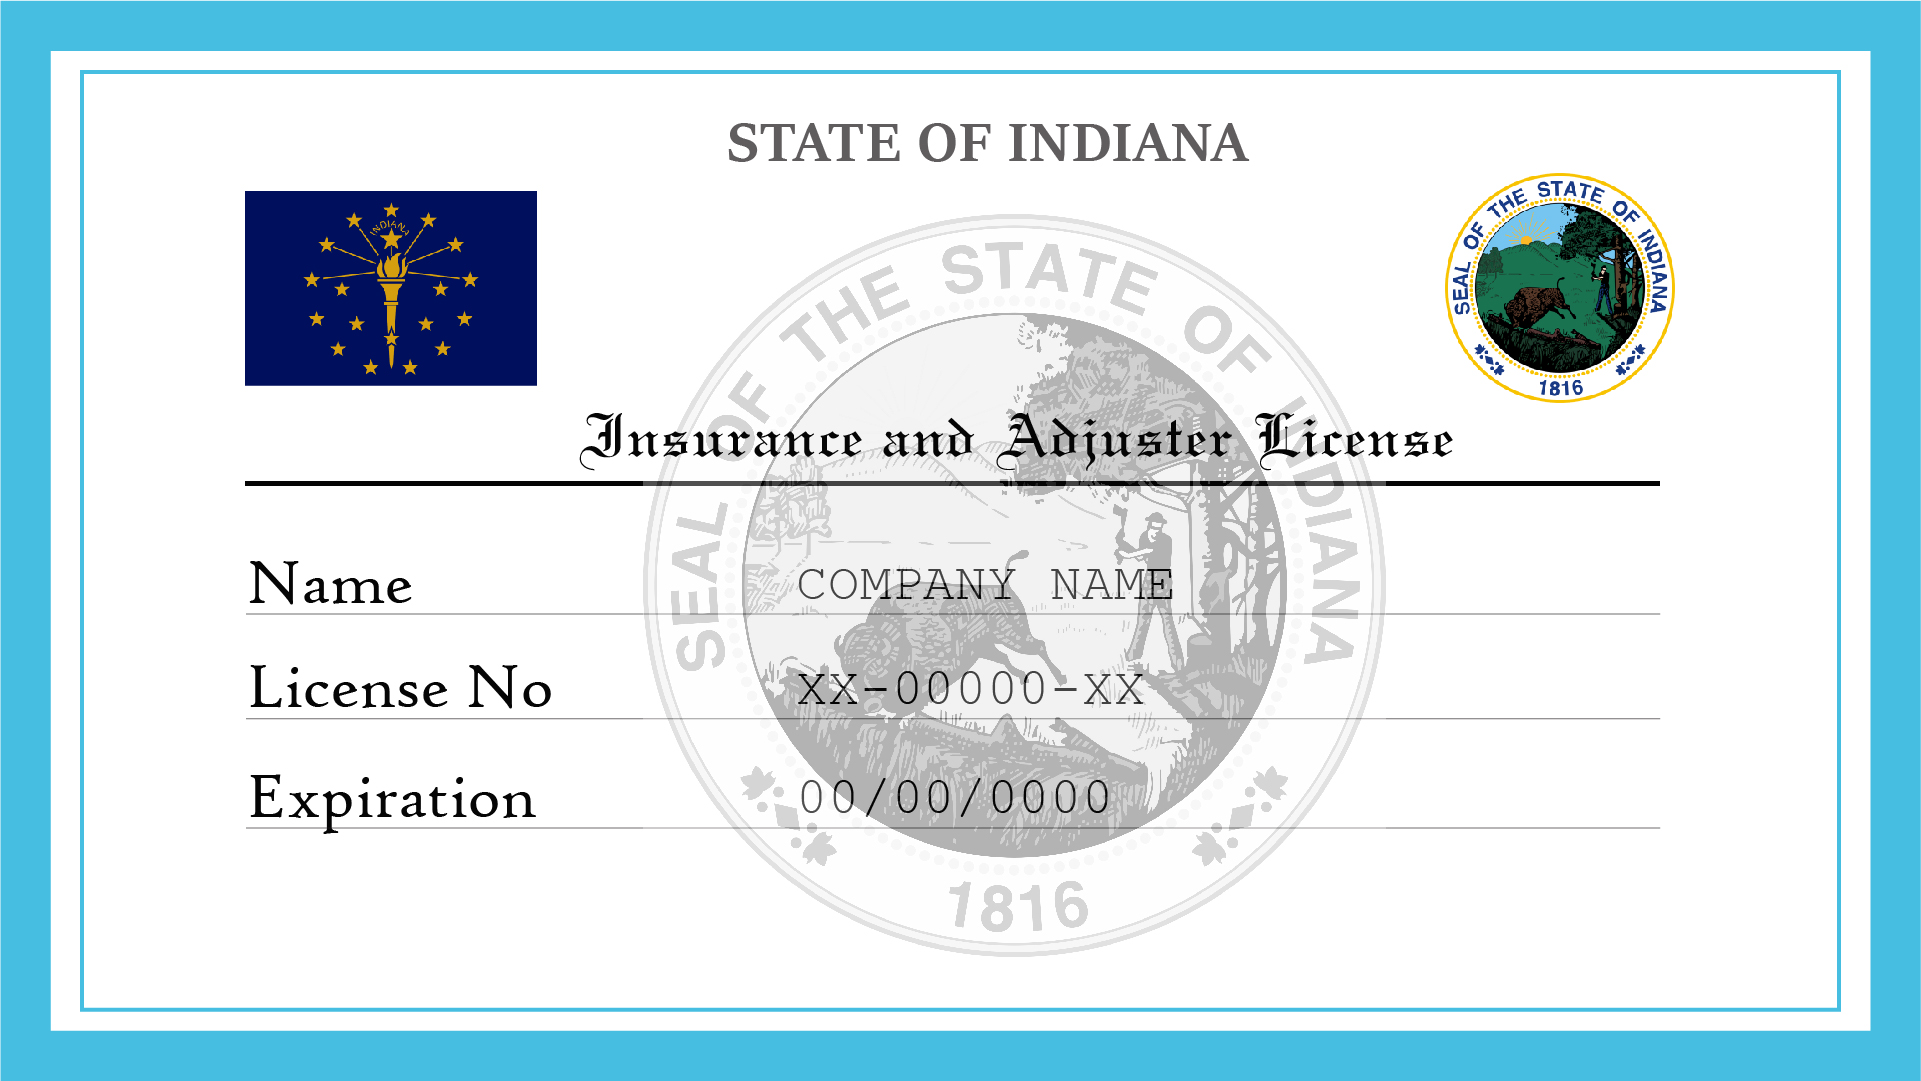 Sample Indiana Insurance And Adjuster License